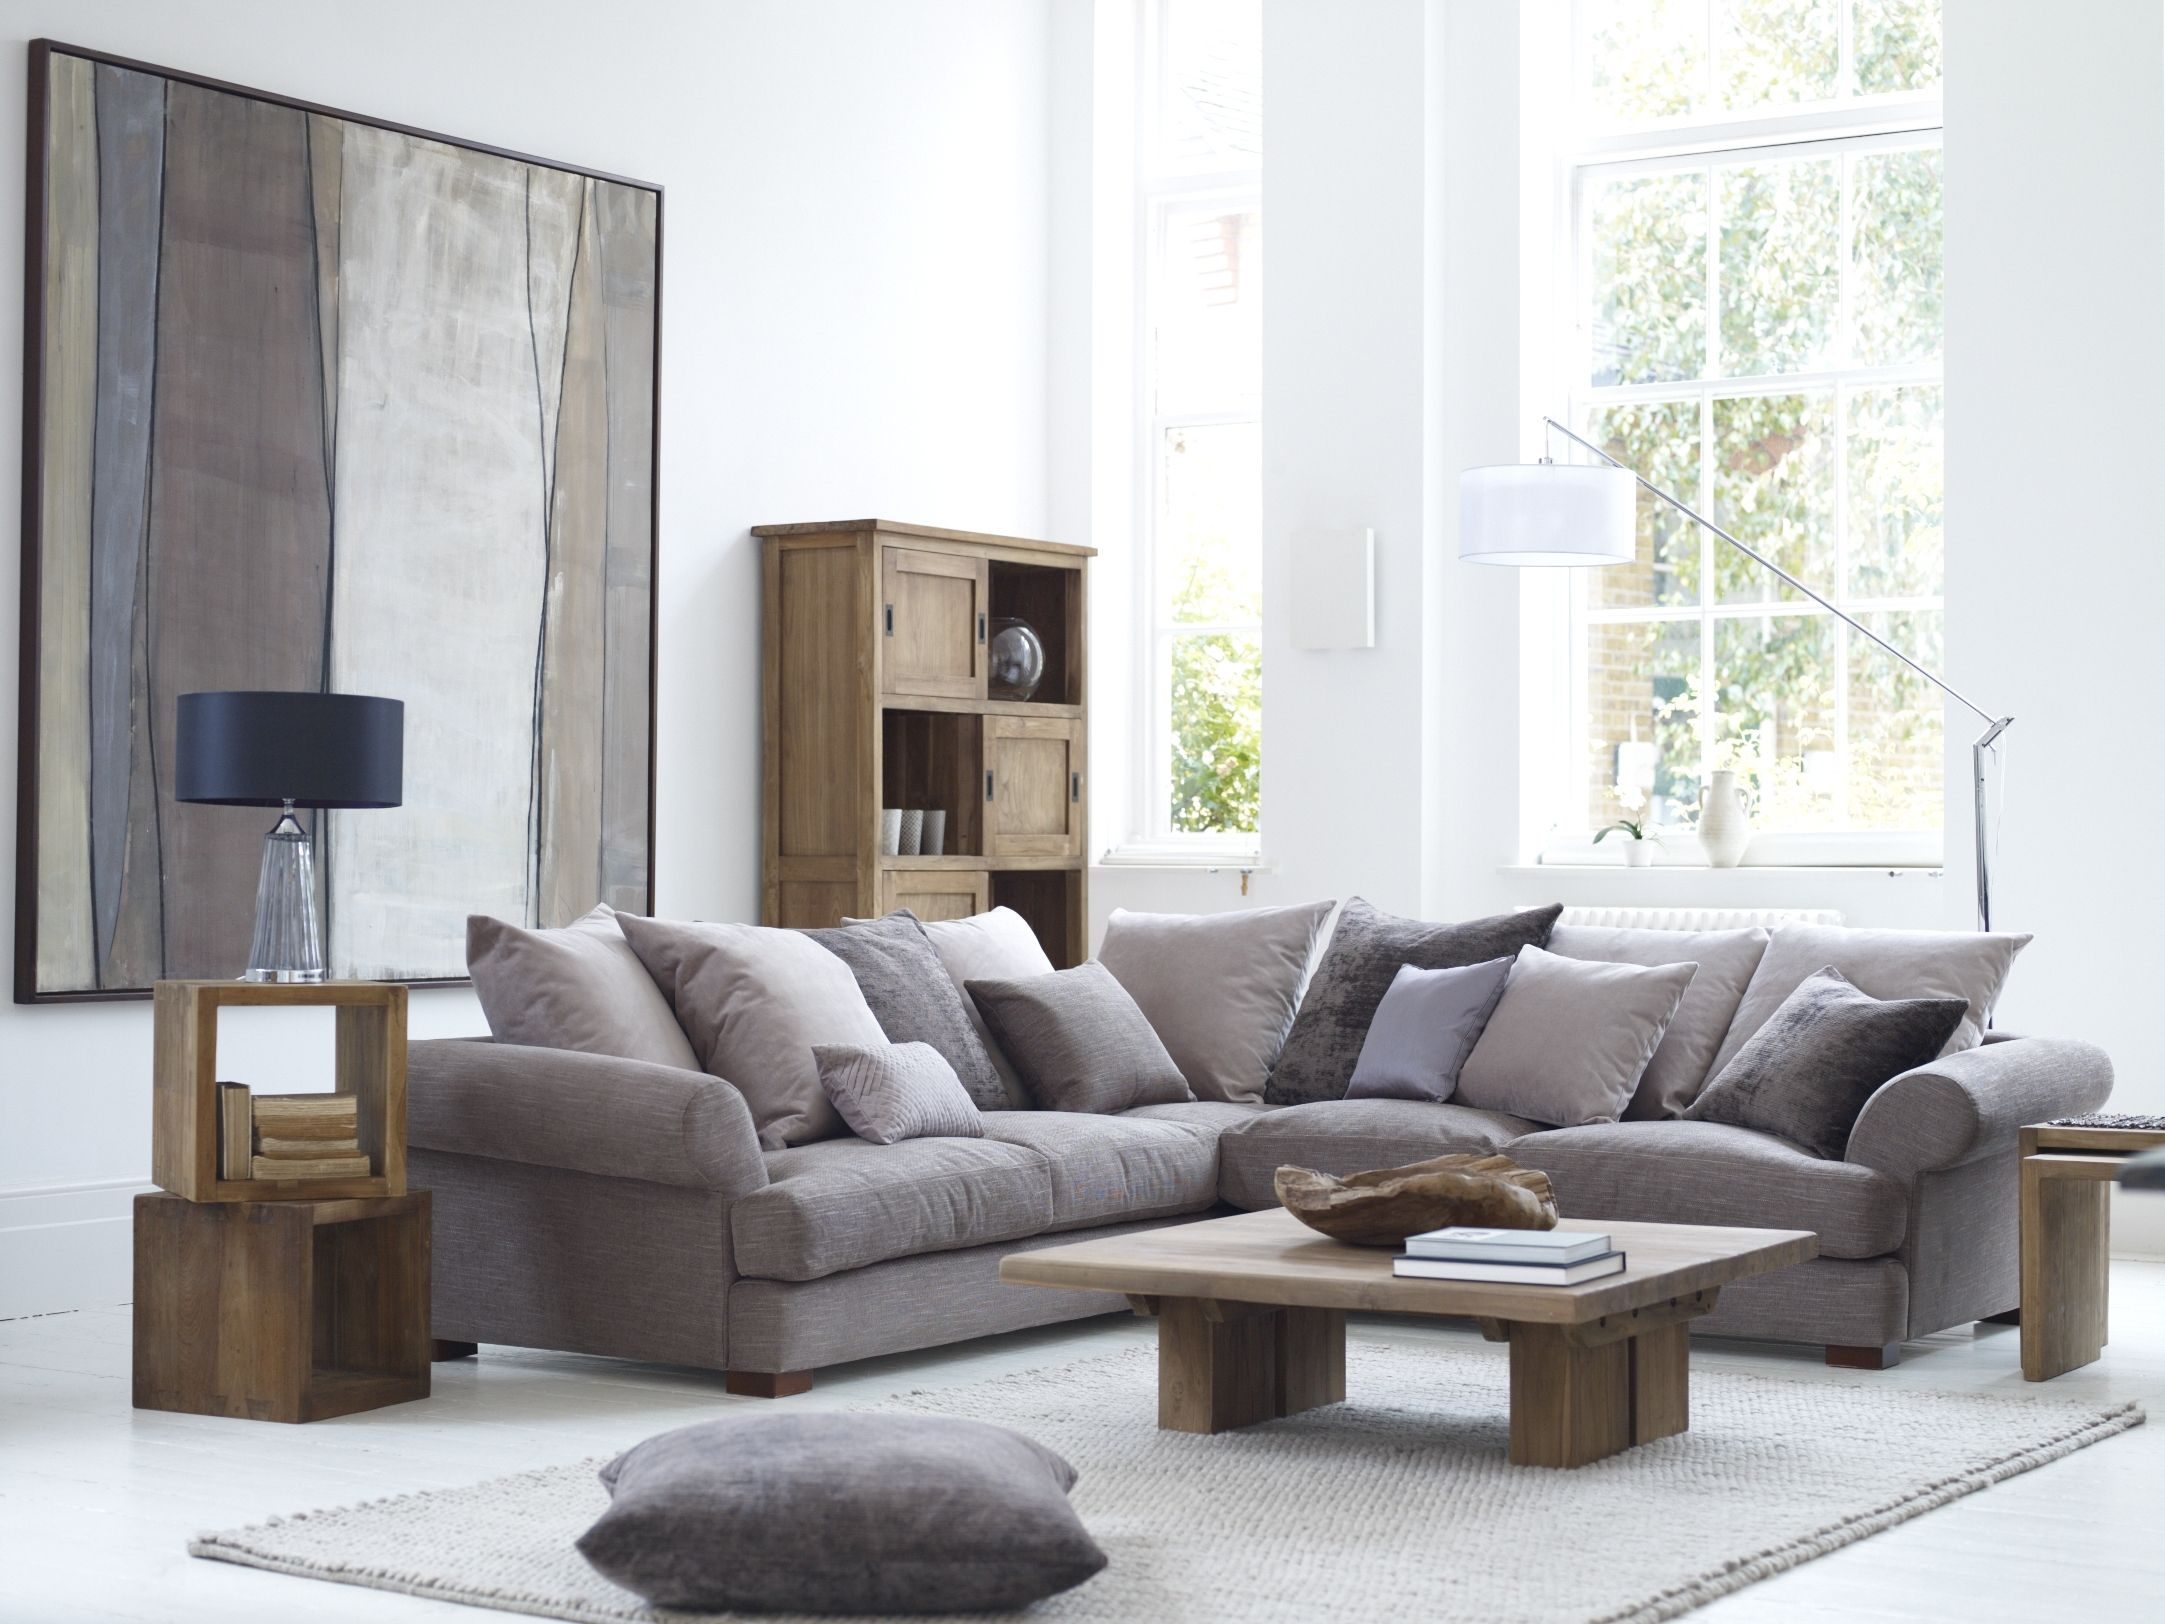 Raft Furniture   Lincoln Corner Unit   All Sofas Handmade In England    Choose Your Style, Size And Fabric!